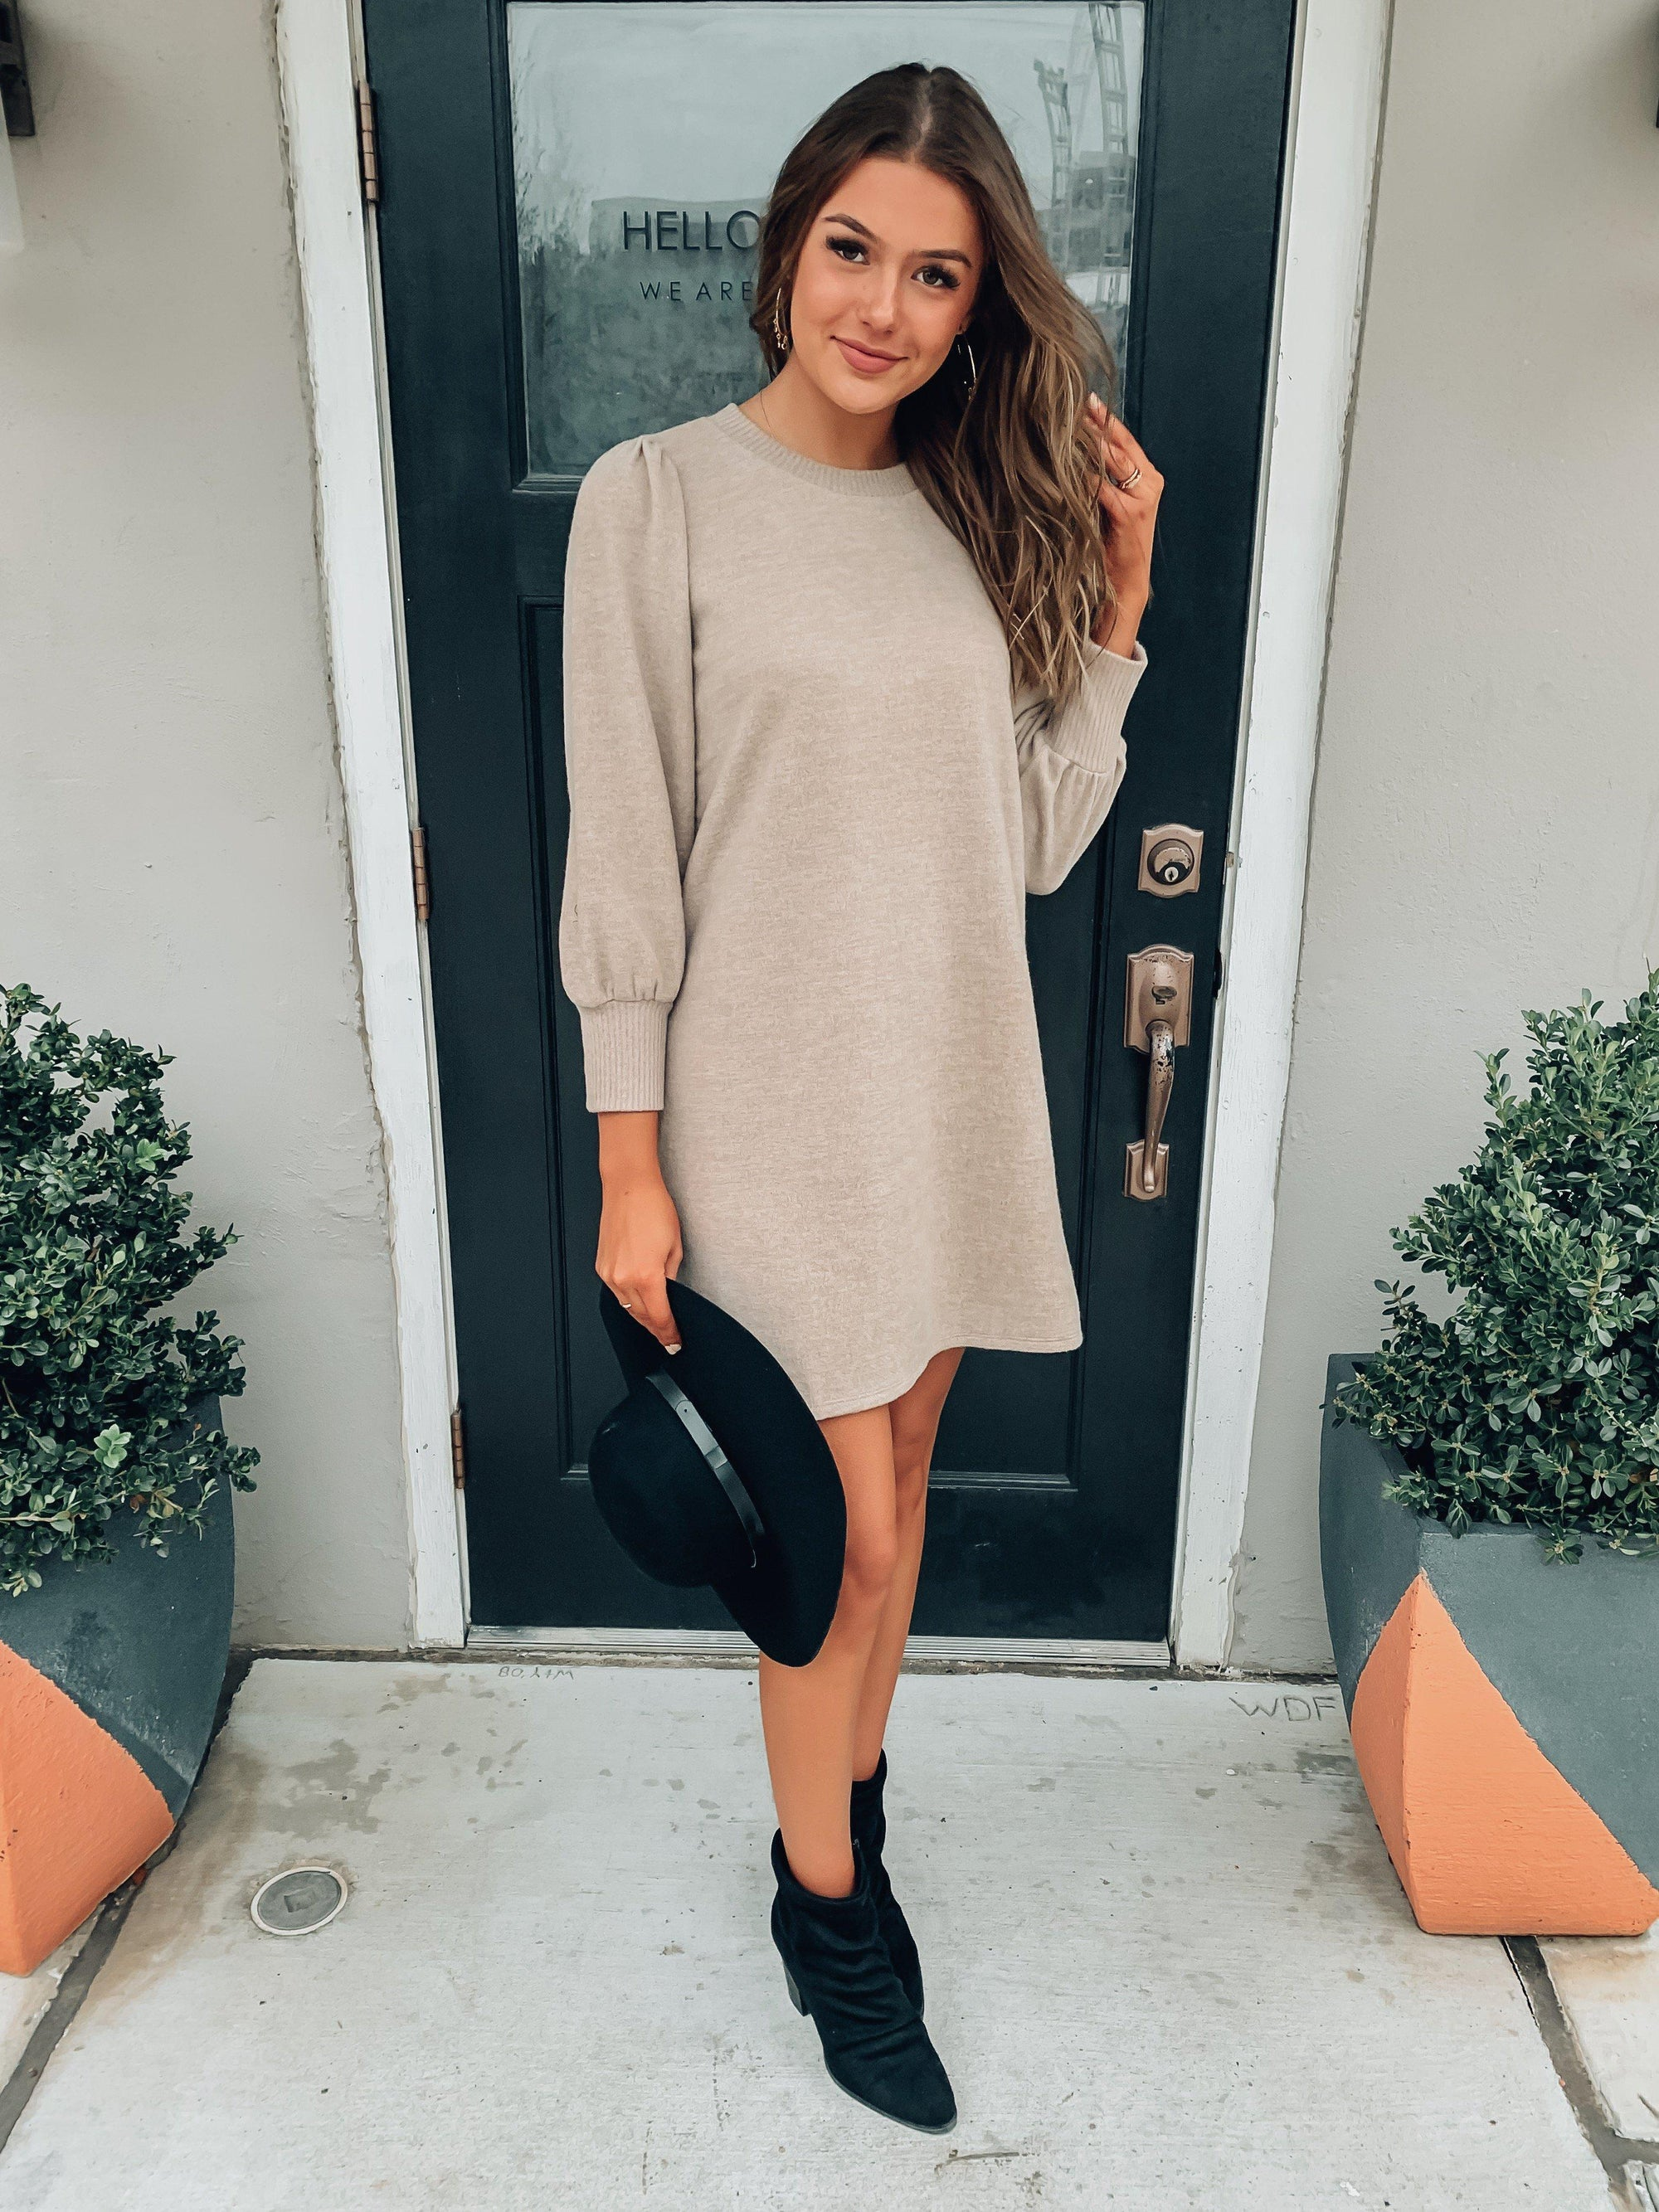 Blog About It Sweater Dress-Women's DRESS-New Arrivals-Runway Seven